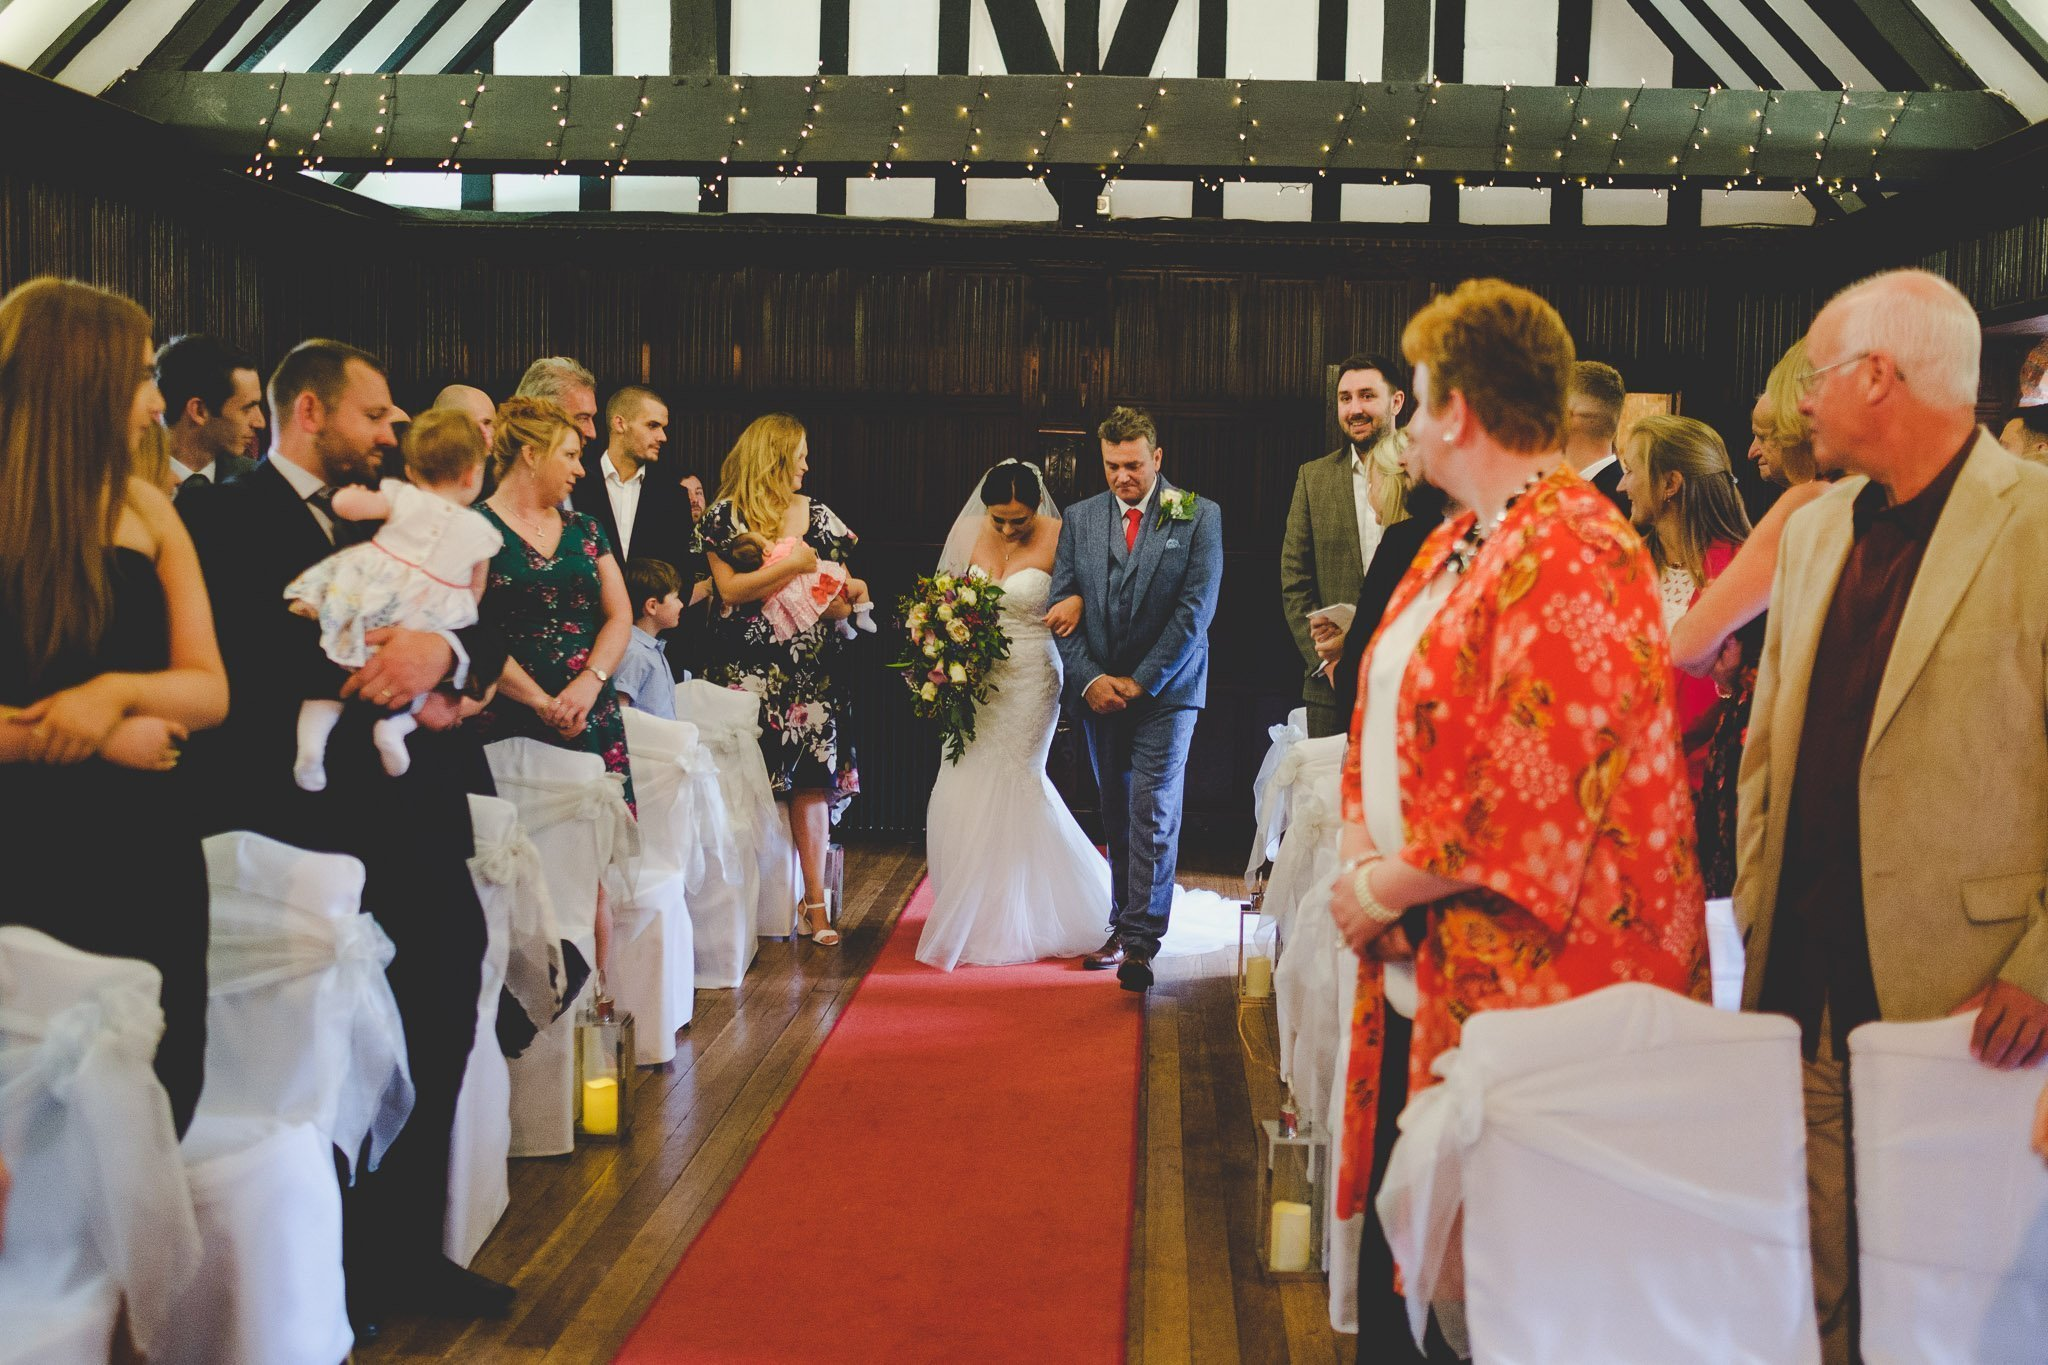 Father walking bride down the aisle at Leez Priory wedding